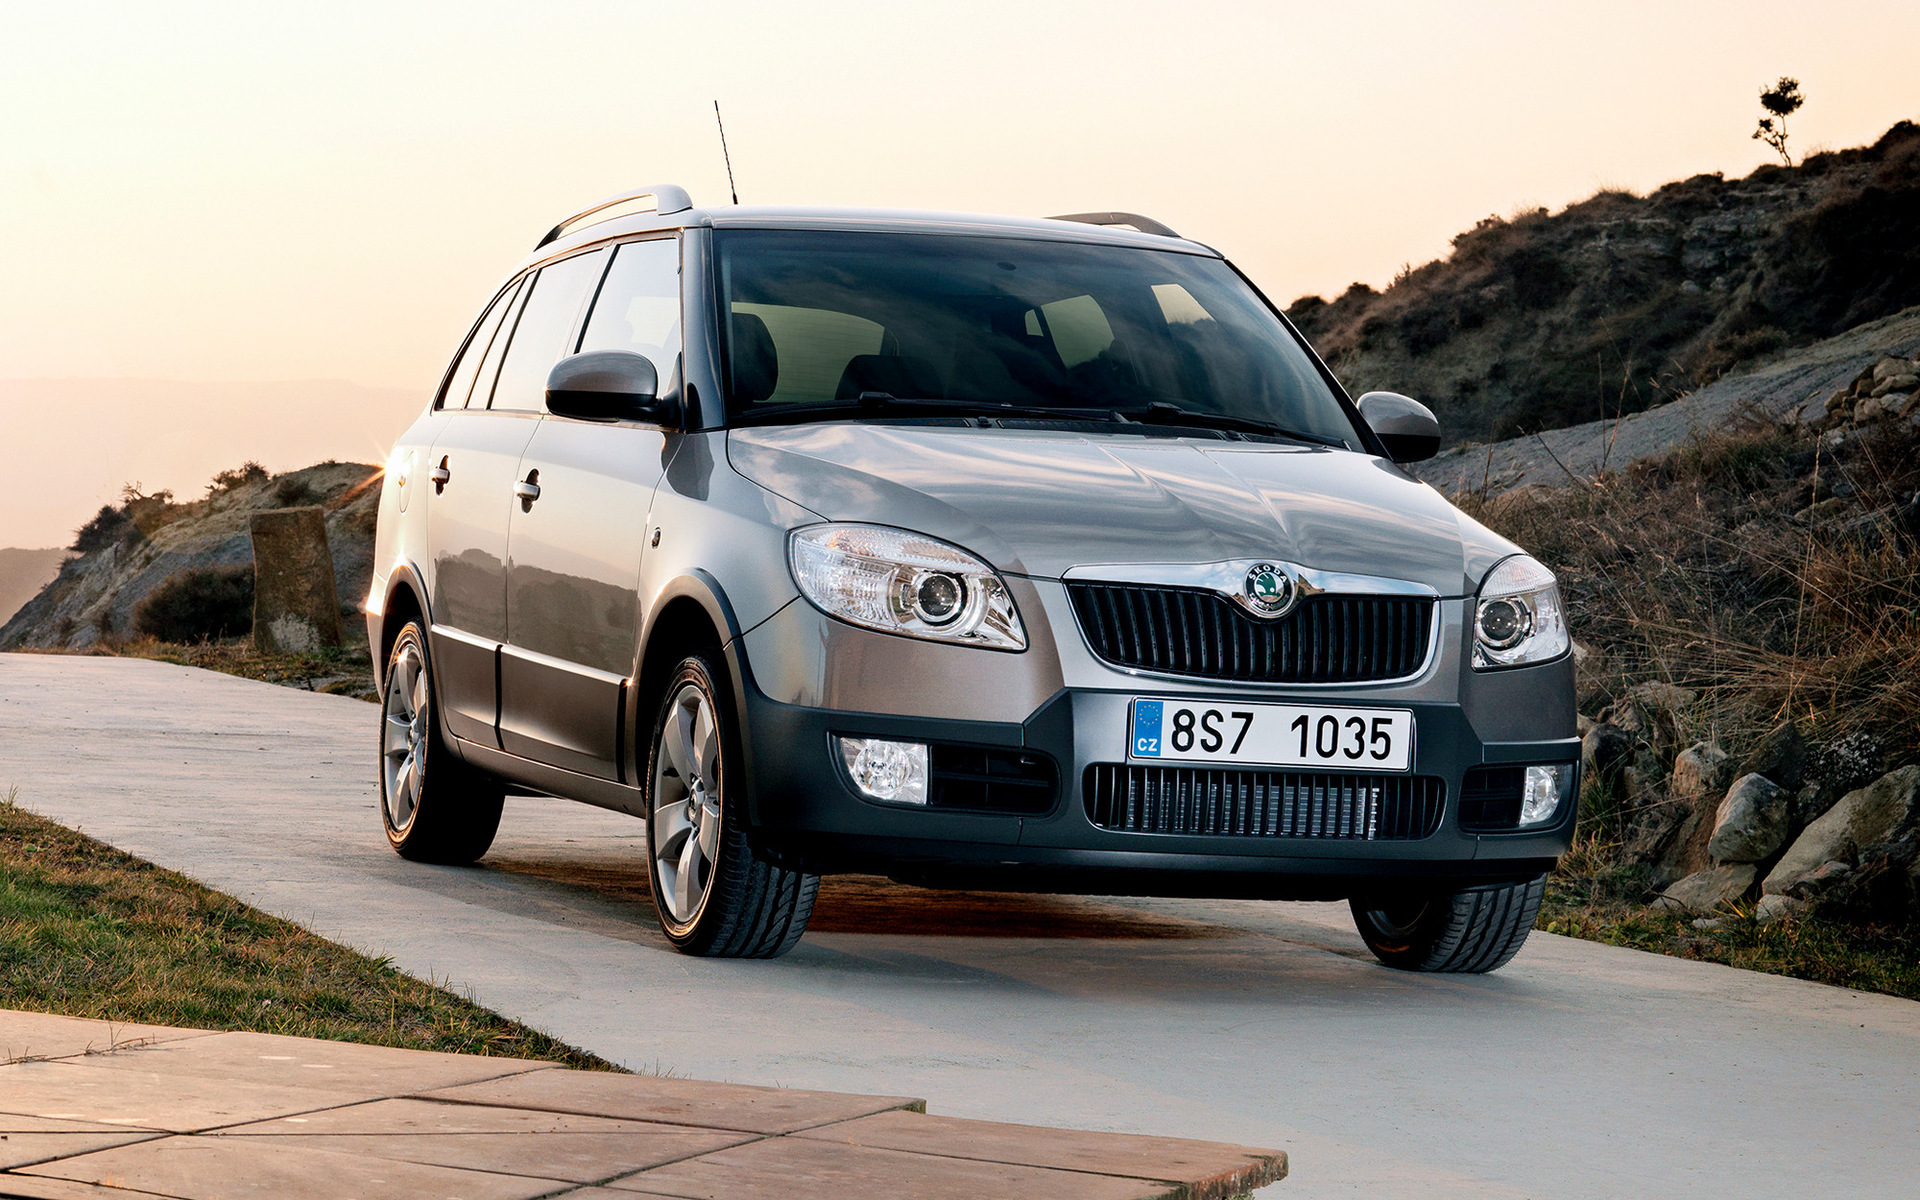 skoda fabia scout combi 2009 wallpapers and hd images. Black Bedroom Furniture Sets. Home Design Ideas